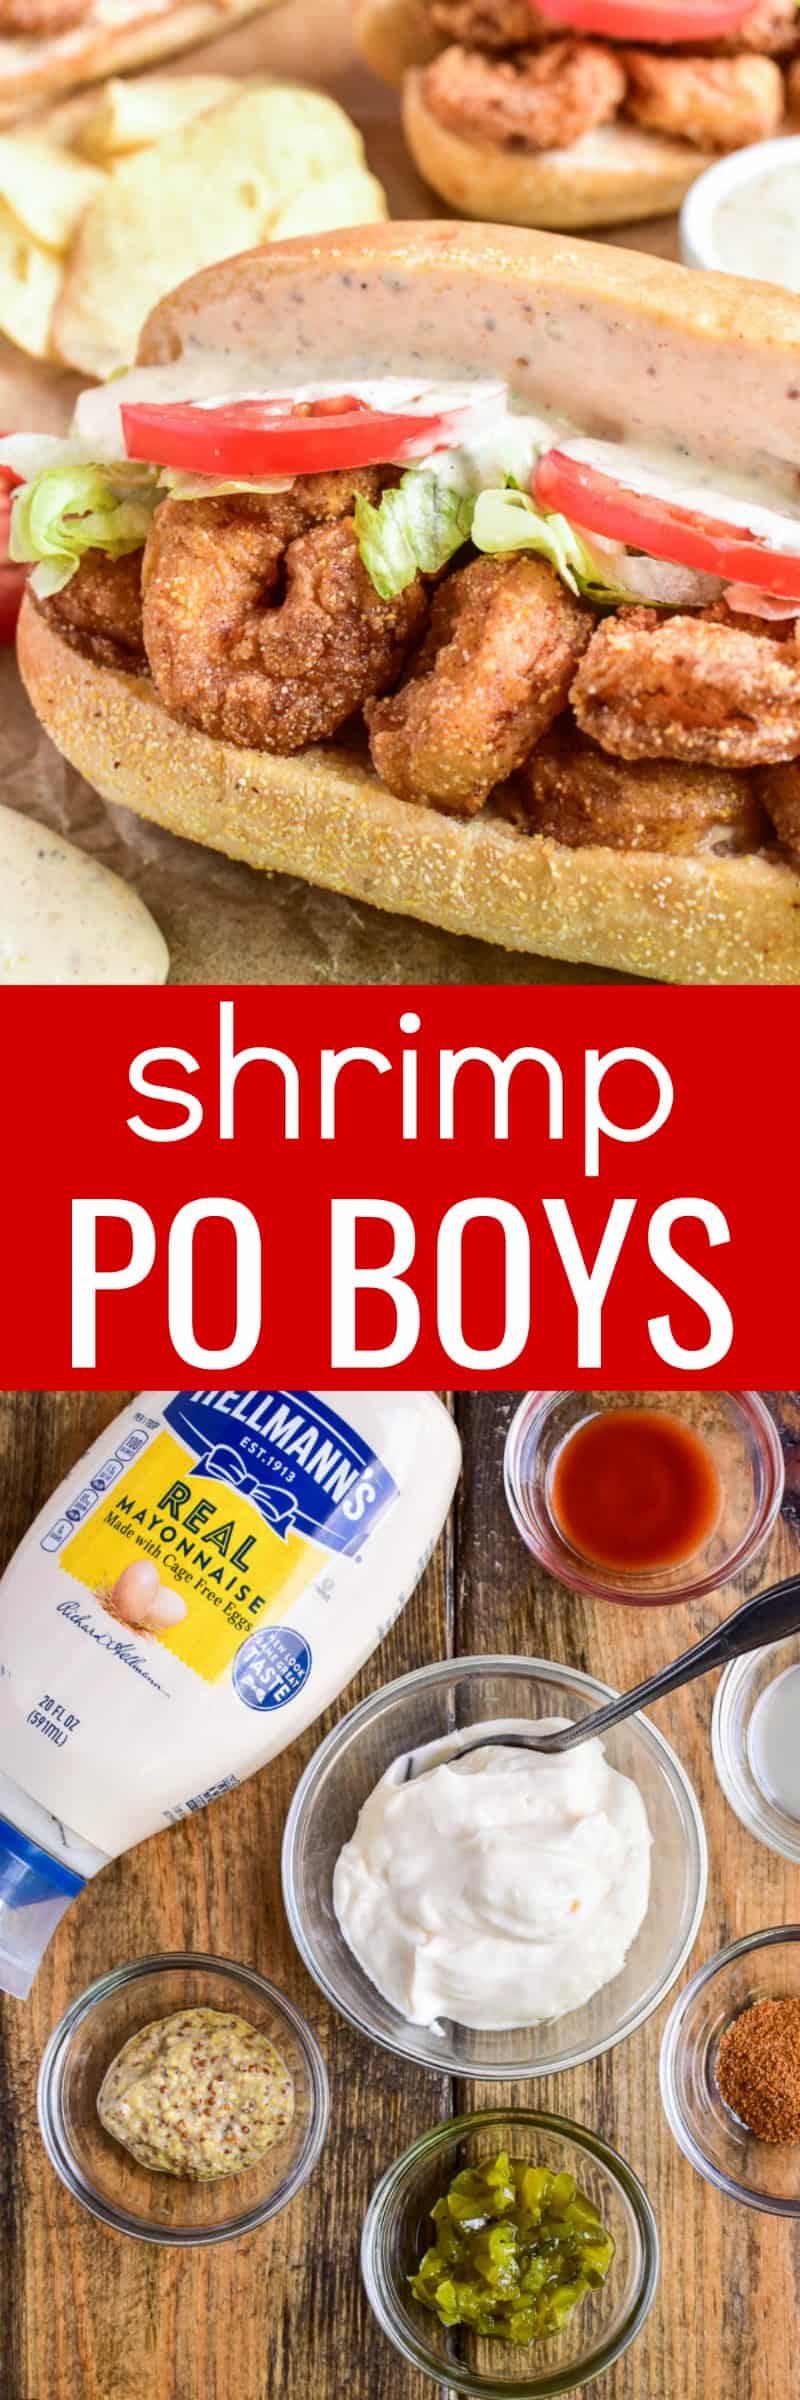 Collage image of Shrimp Po Boys